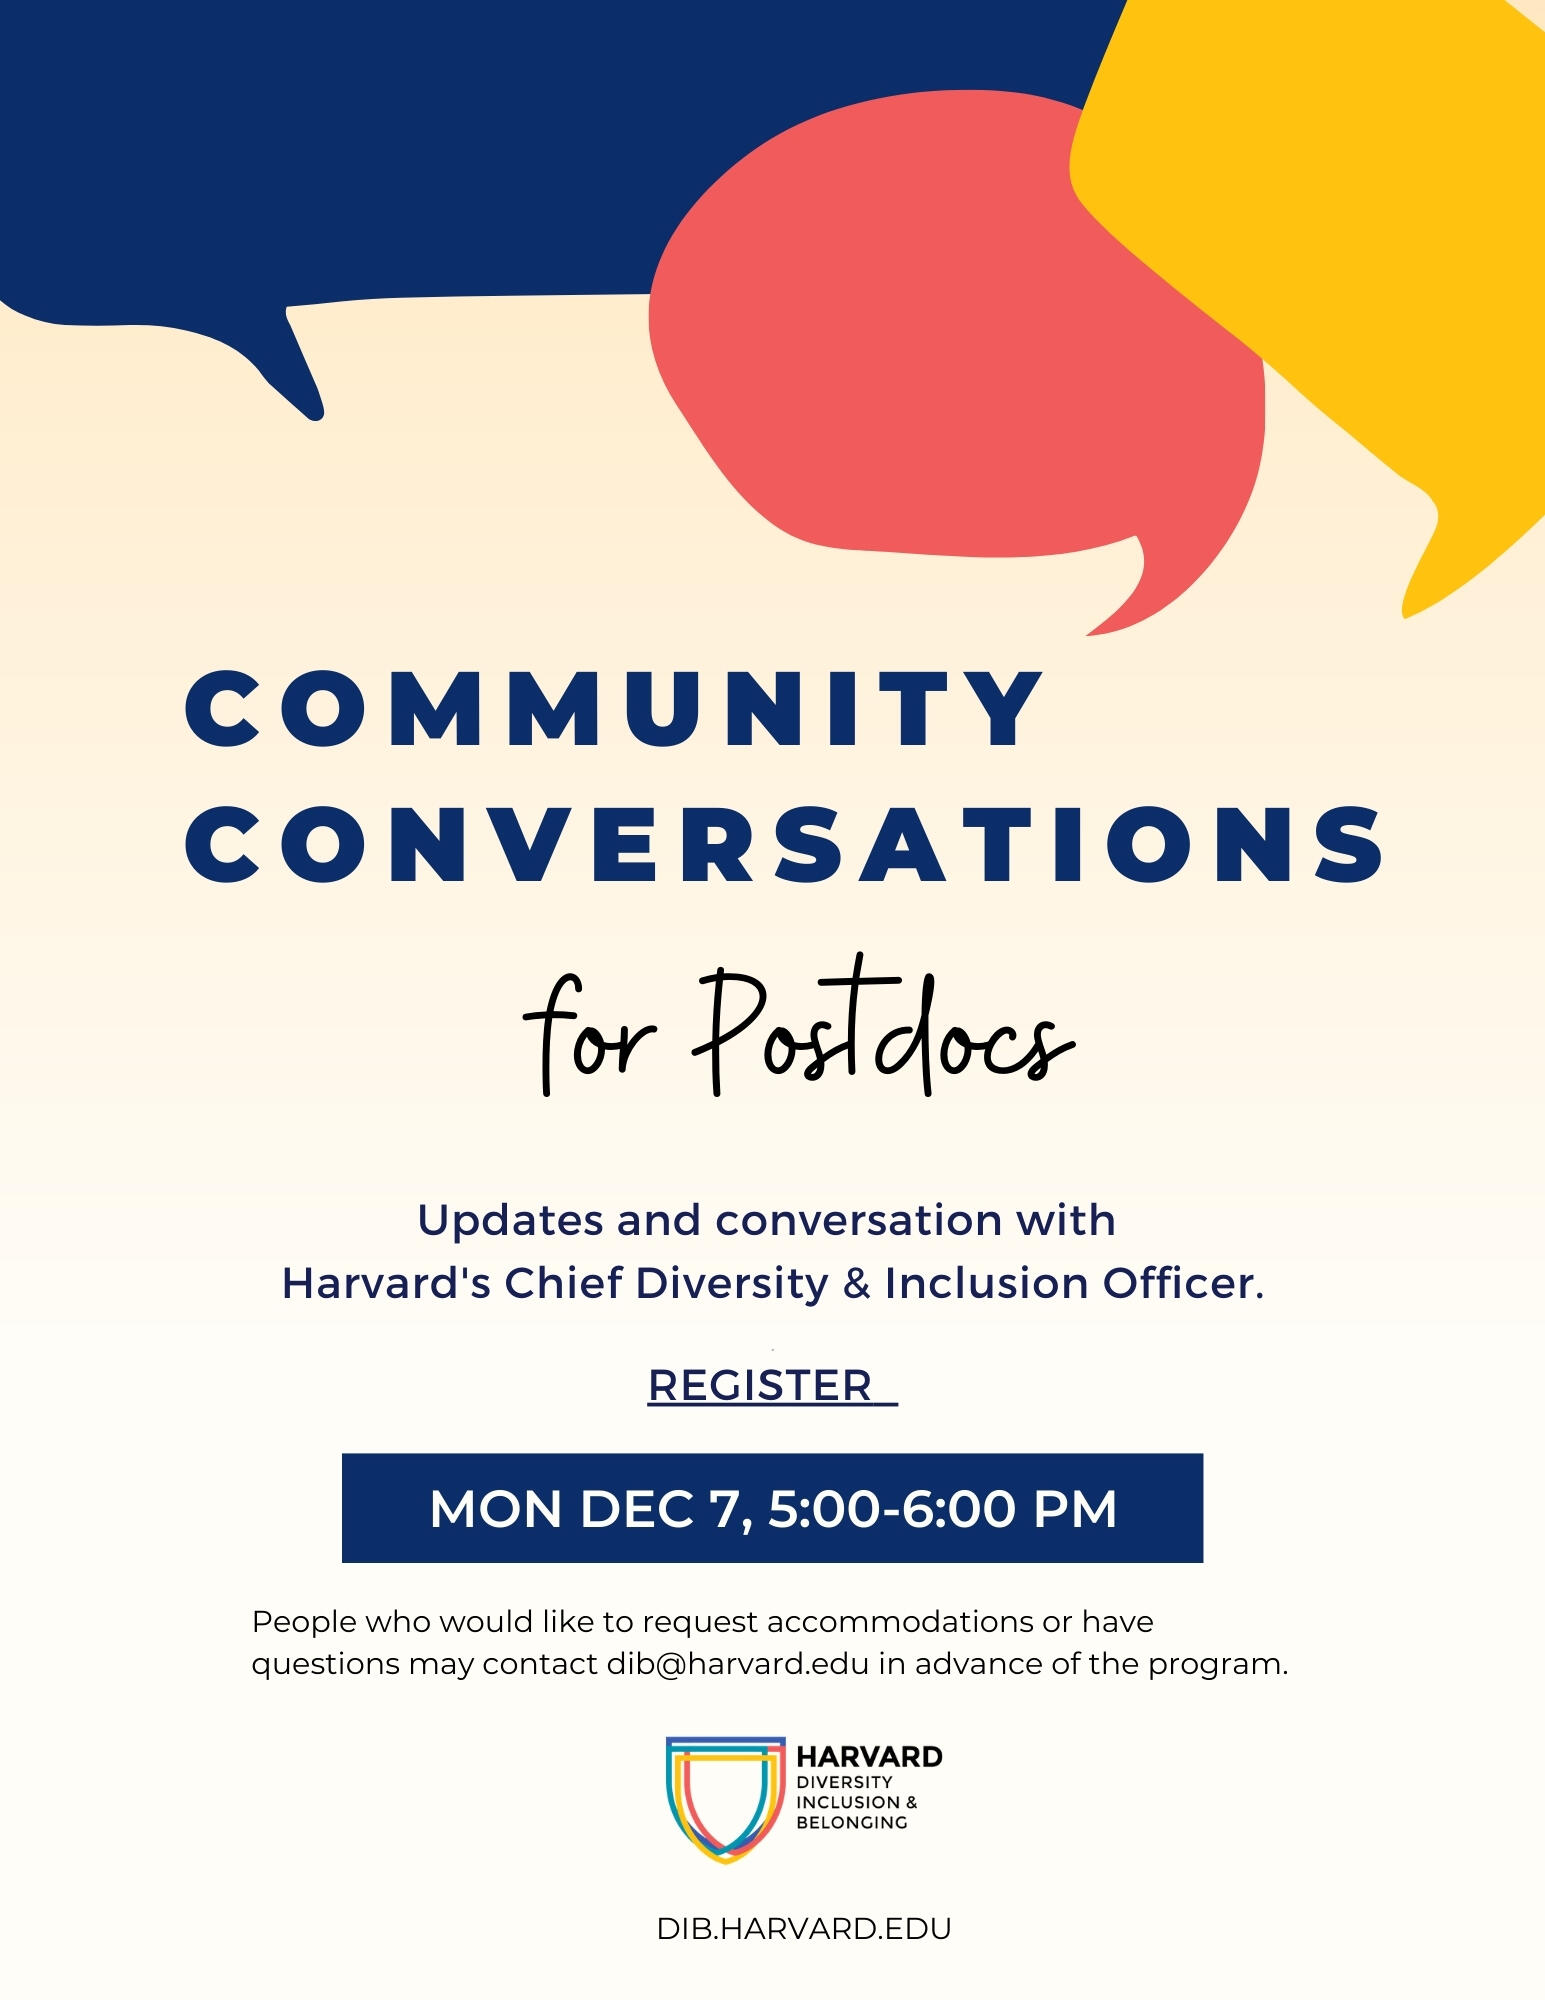 Community Conversations for Postdocs Flyer